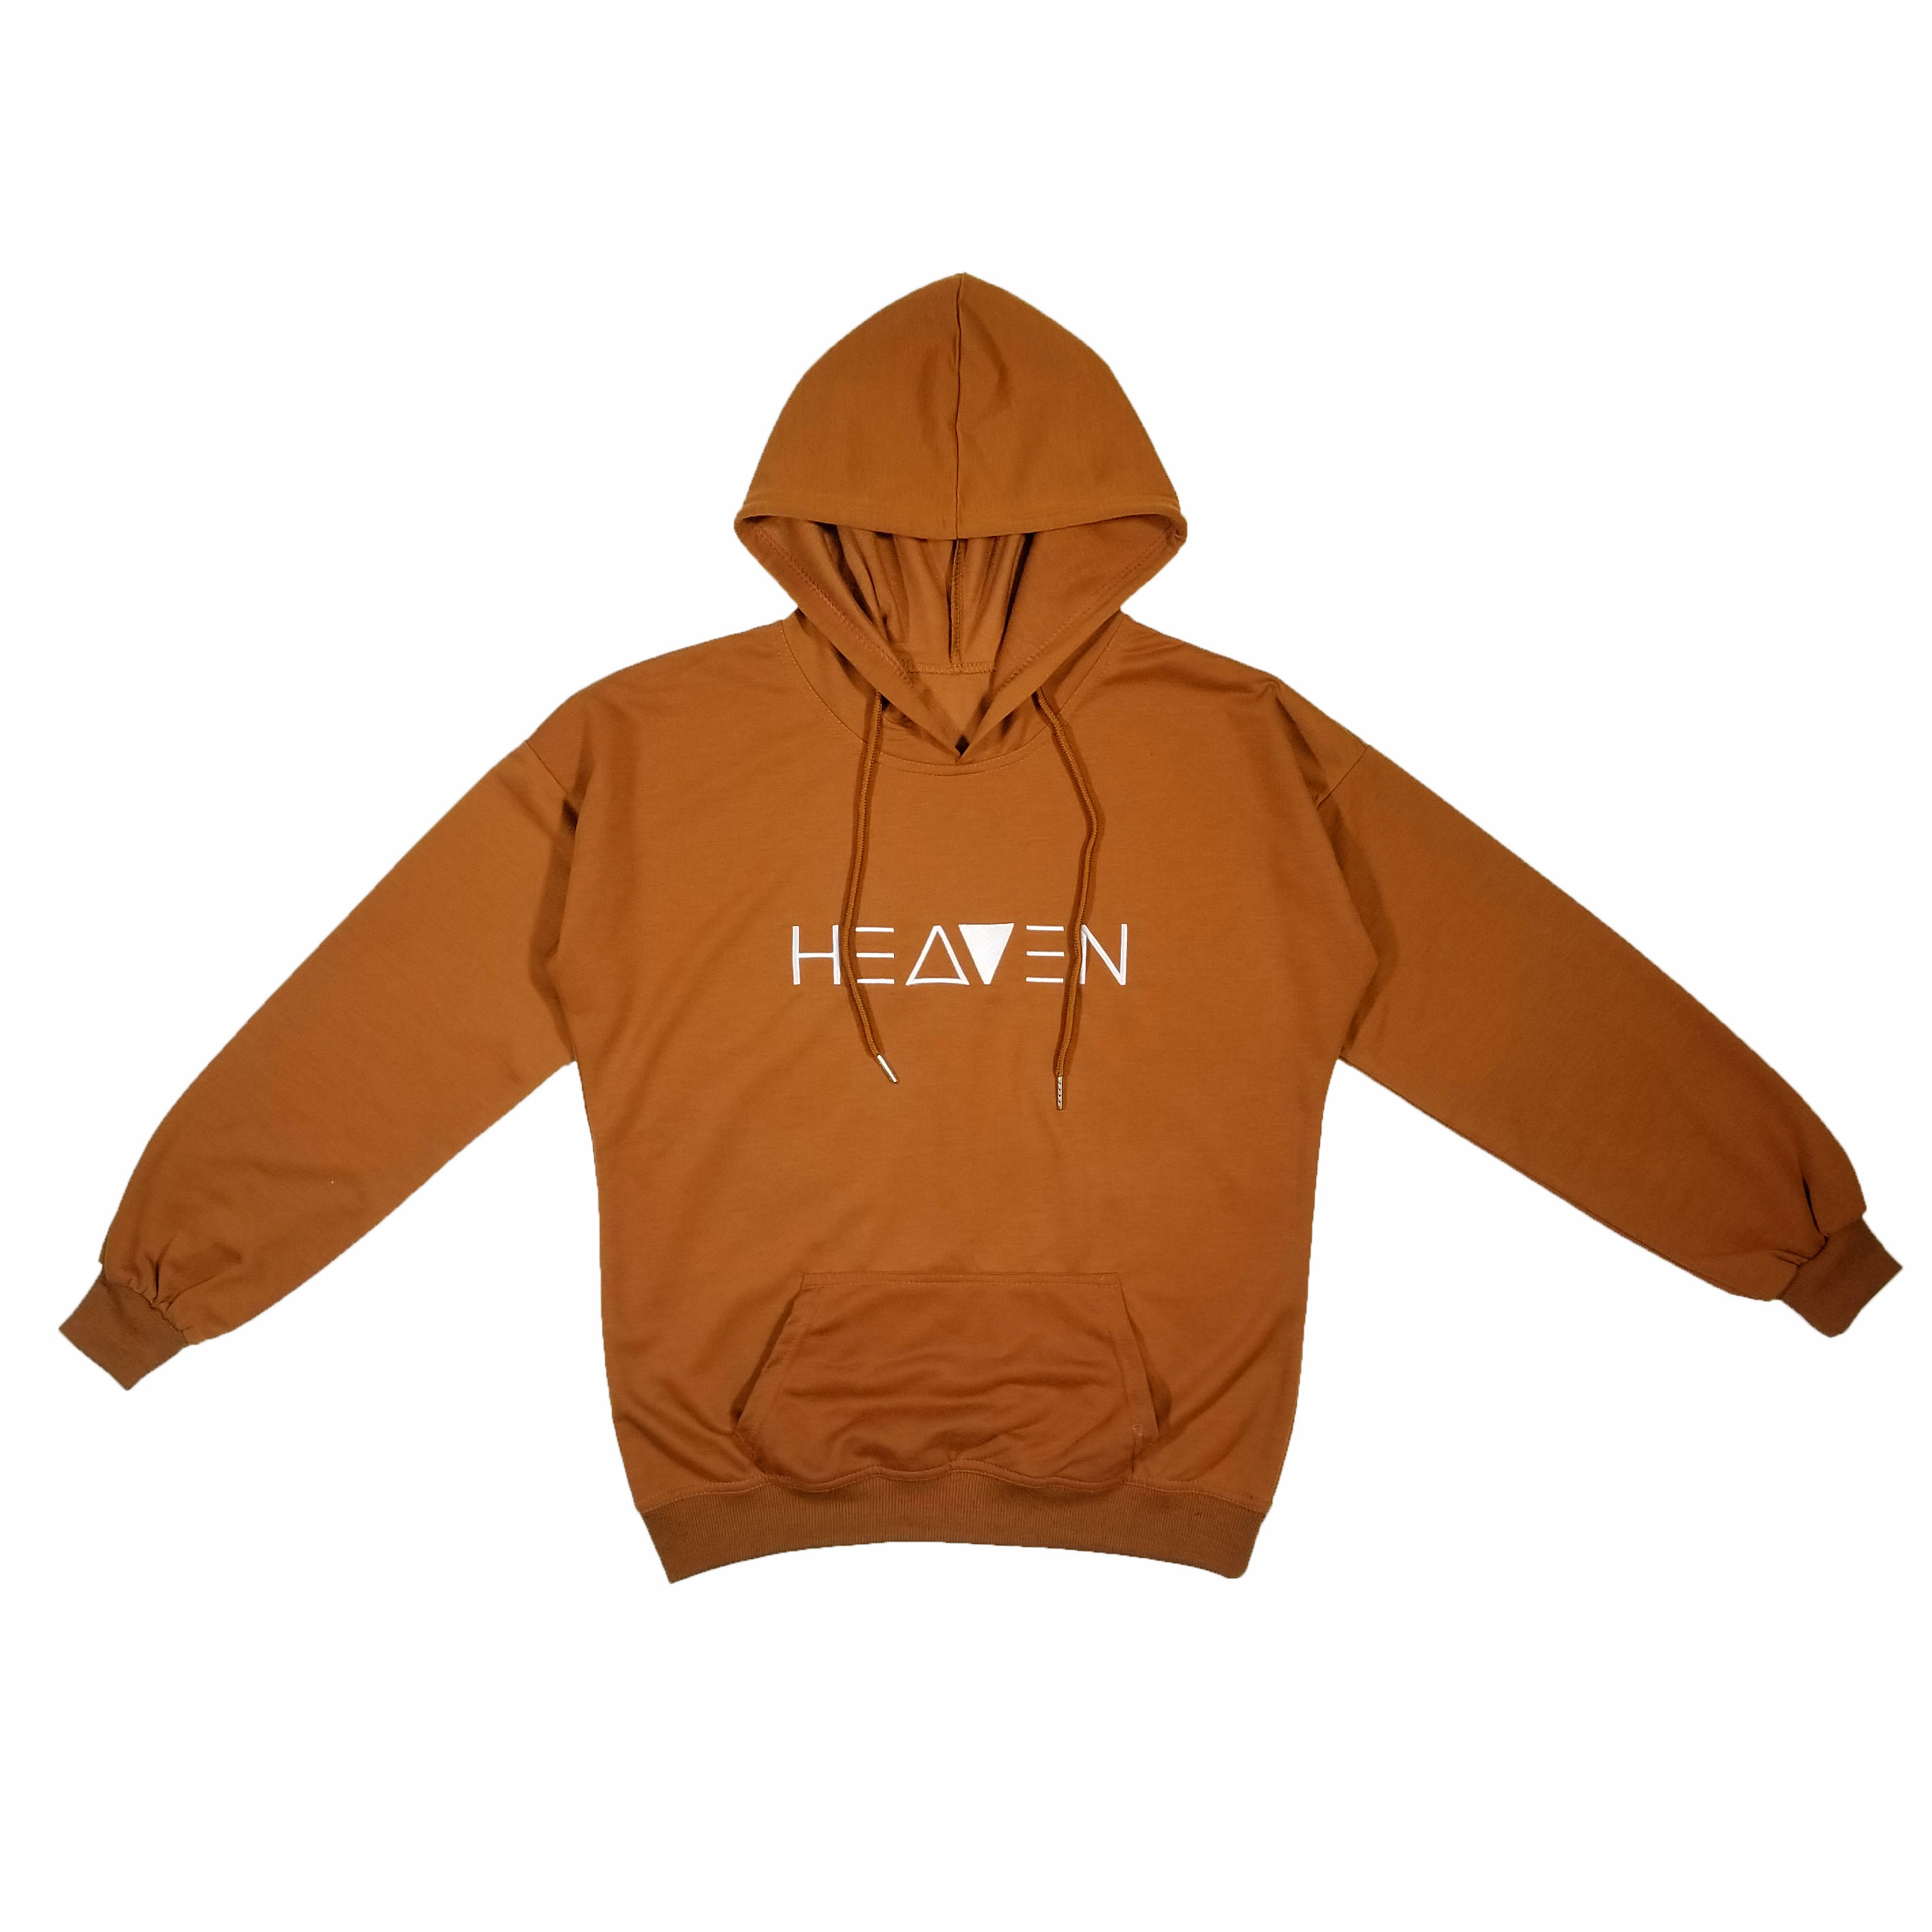 2019 Custom printing Women Oversized XXXXL Hoodies Sweatshirts